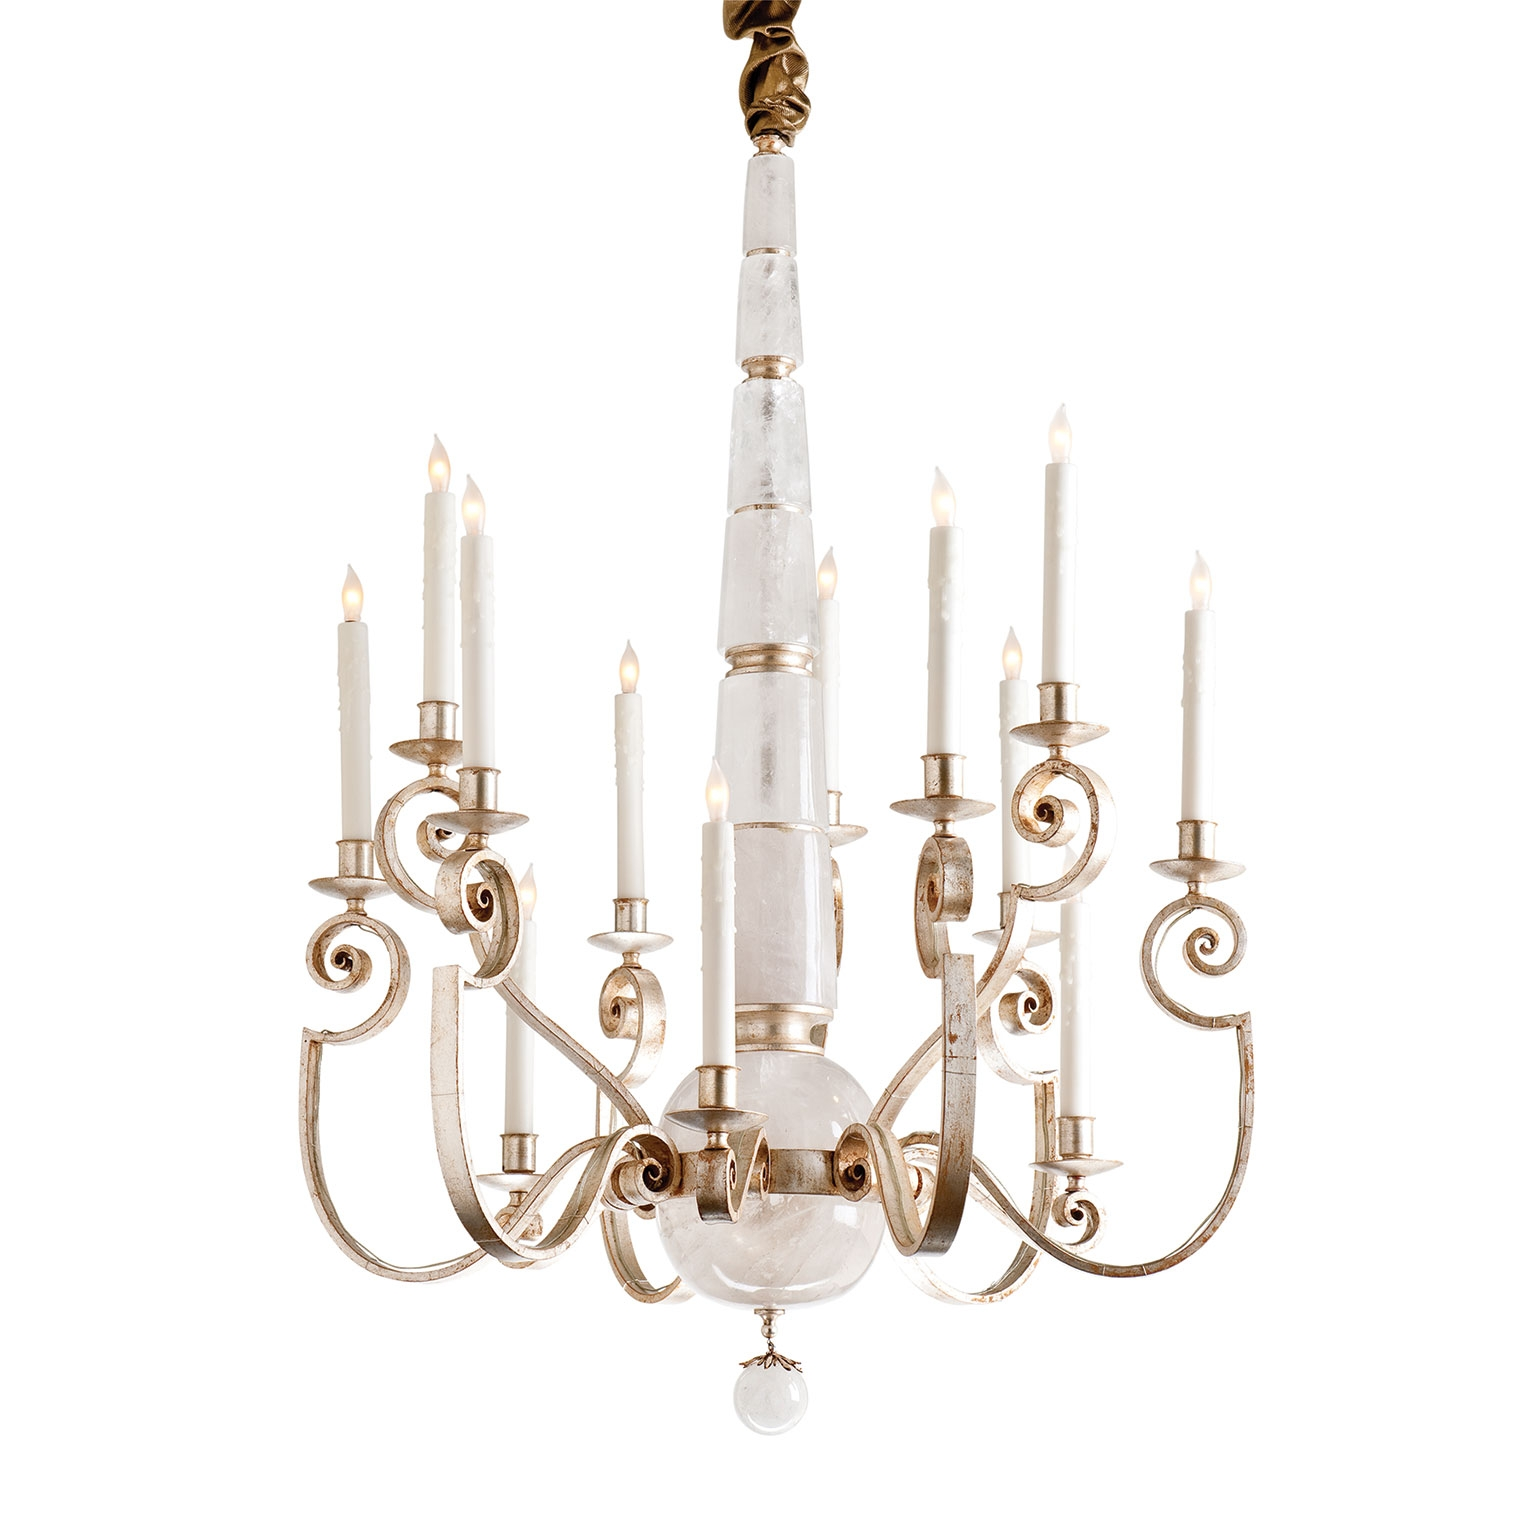 Living Room Crystal Chandeliers Baccarat Chandelier Empire For Florian Crystal Chandeliers (Image 12 of 25)